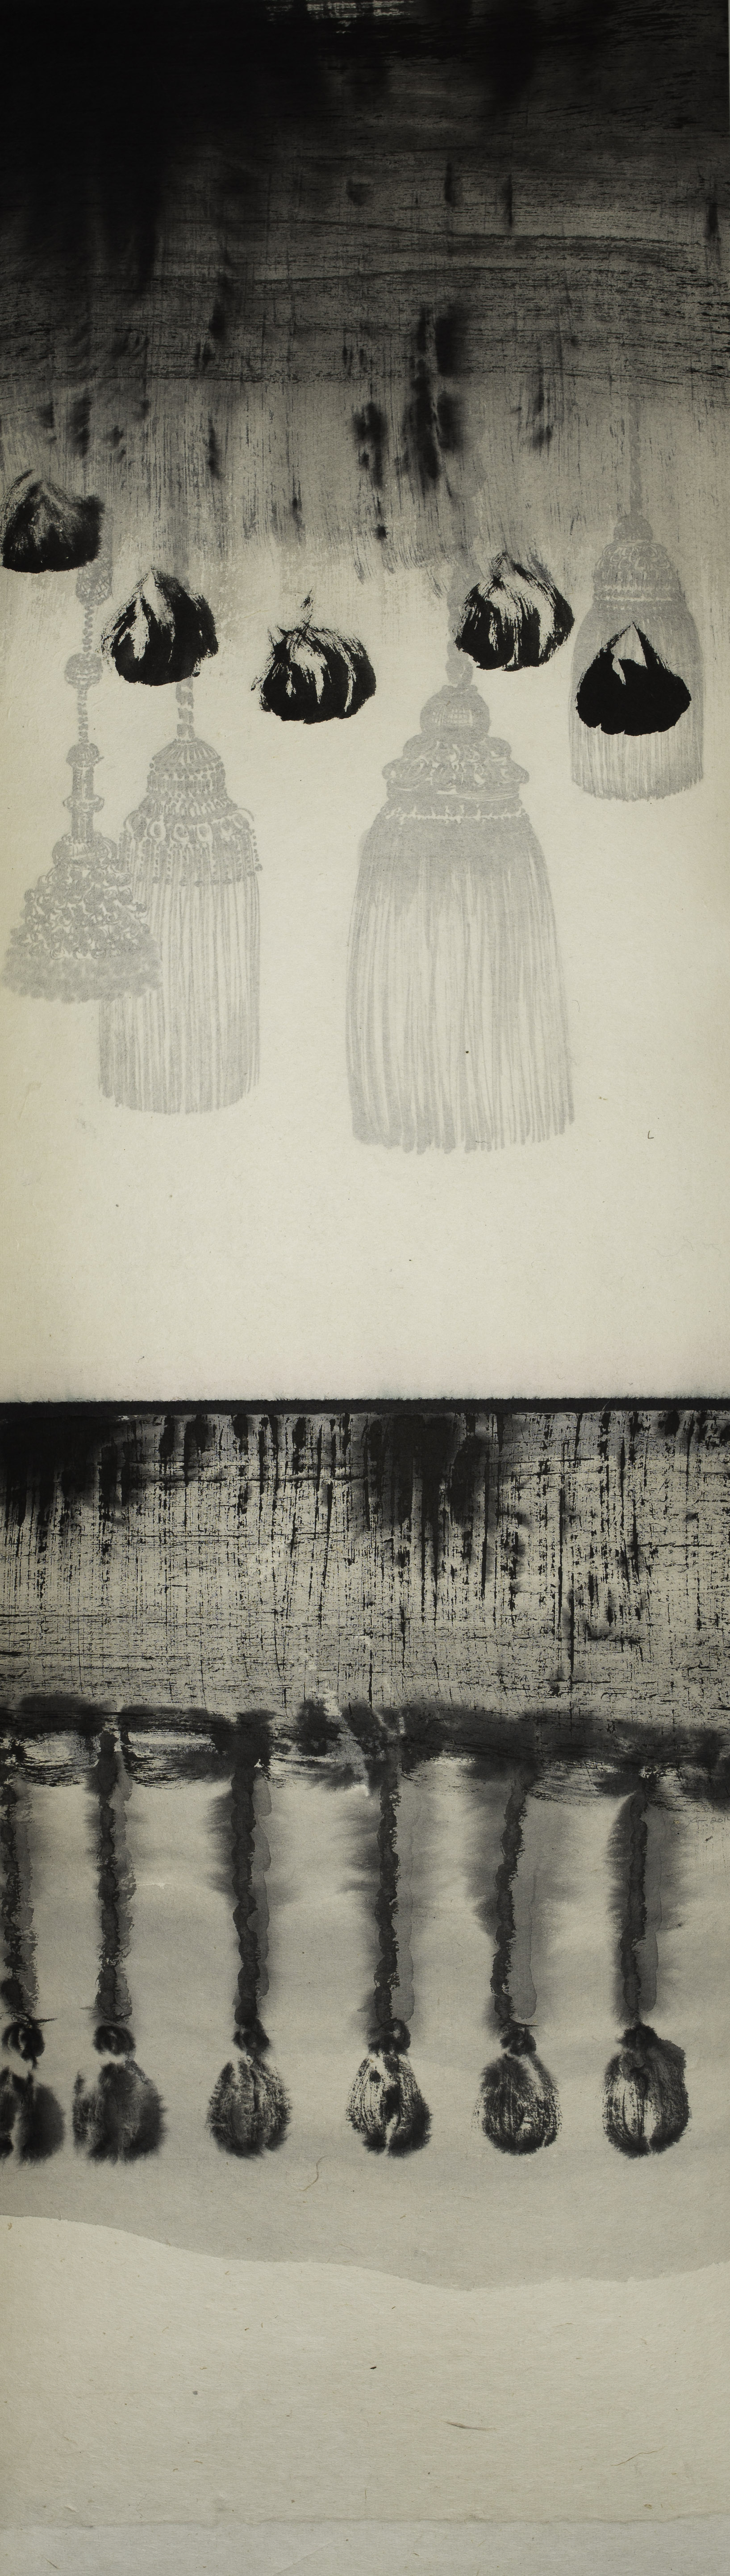 "# 14-02 ink on paper, 40""x11"" 2014"